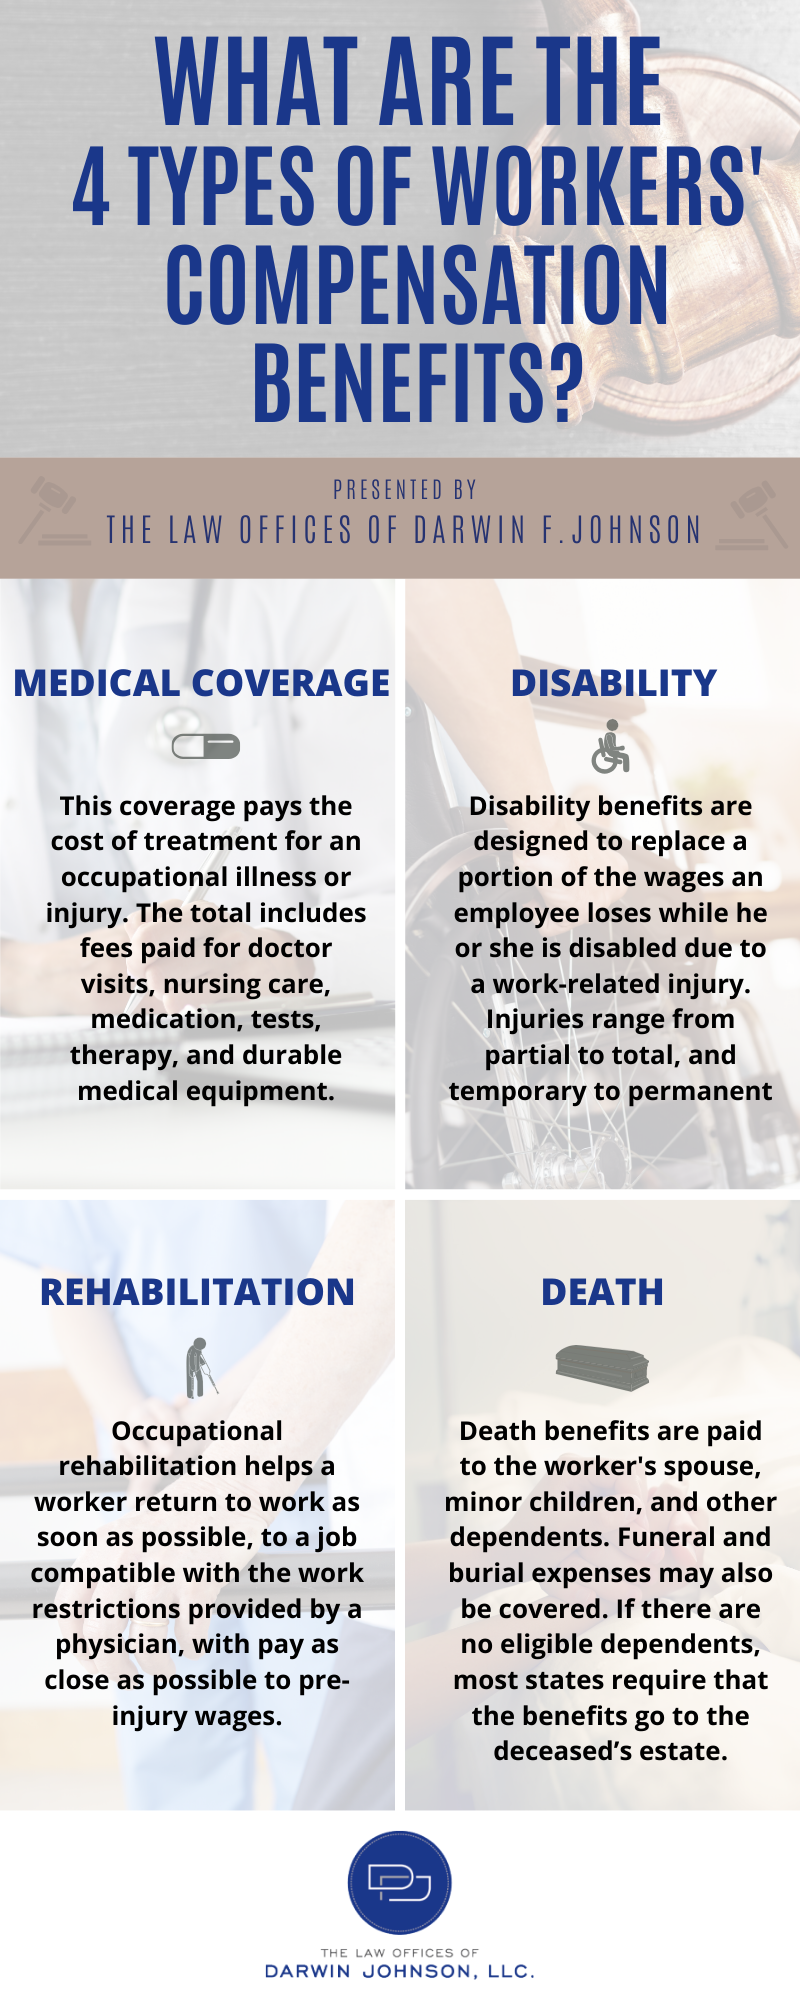 What Are the Types of Workers Compensation Benefits?  The Law Offices of Darwin F. Johnson LLC